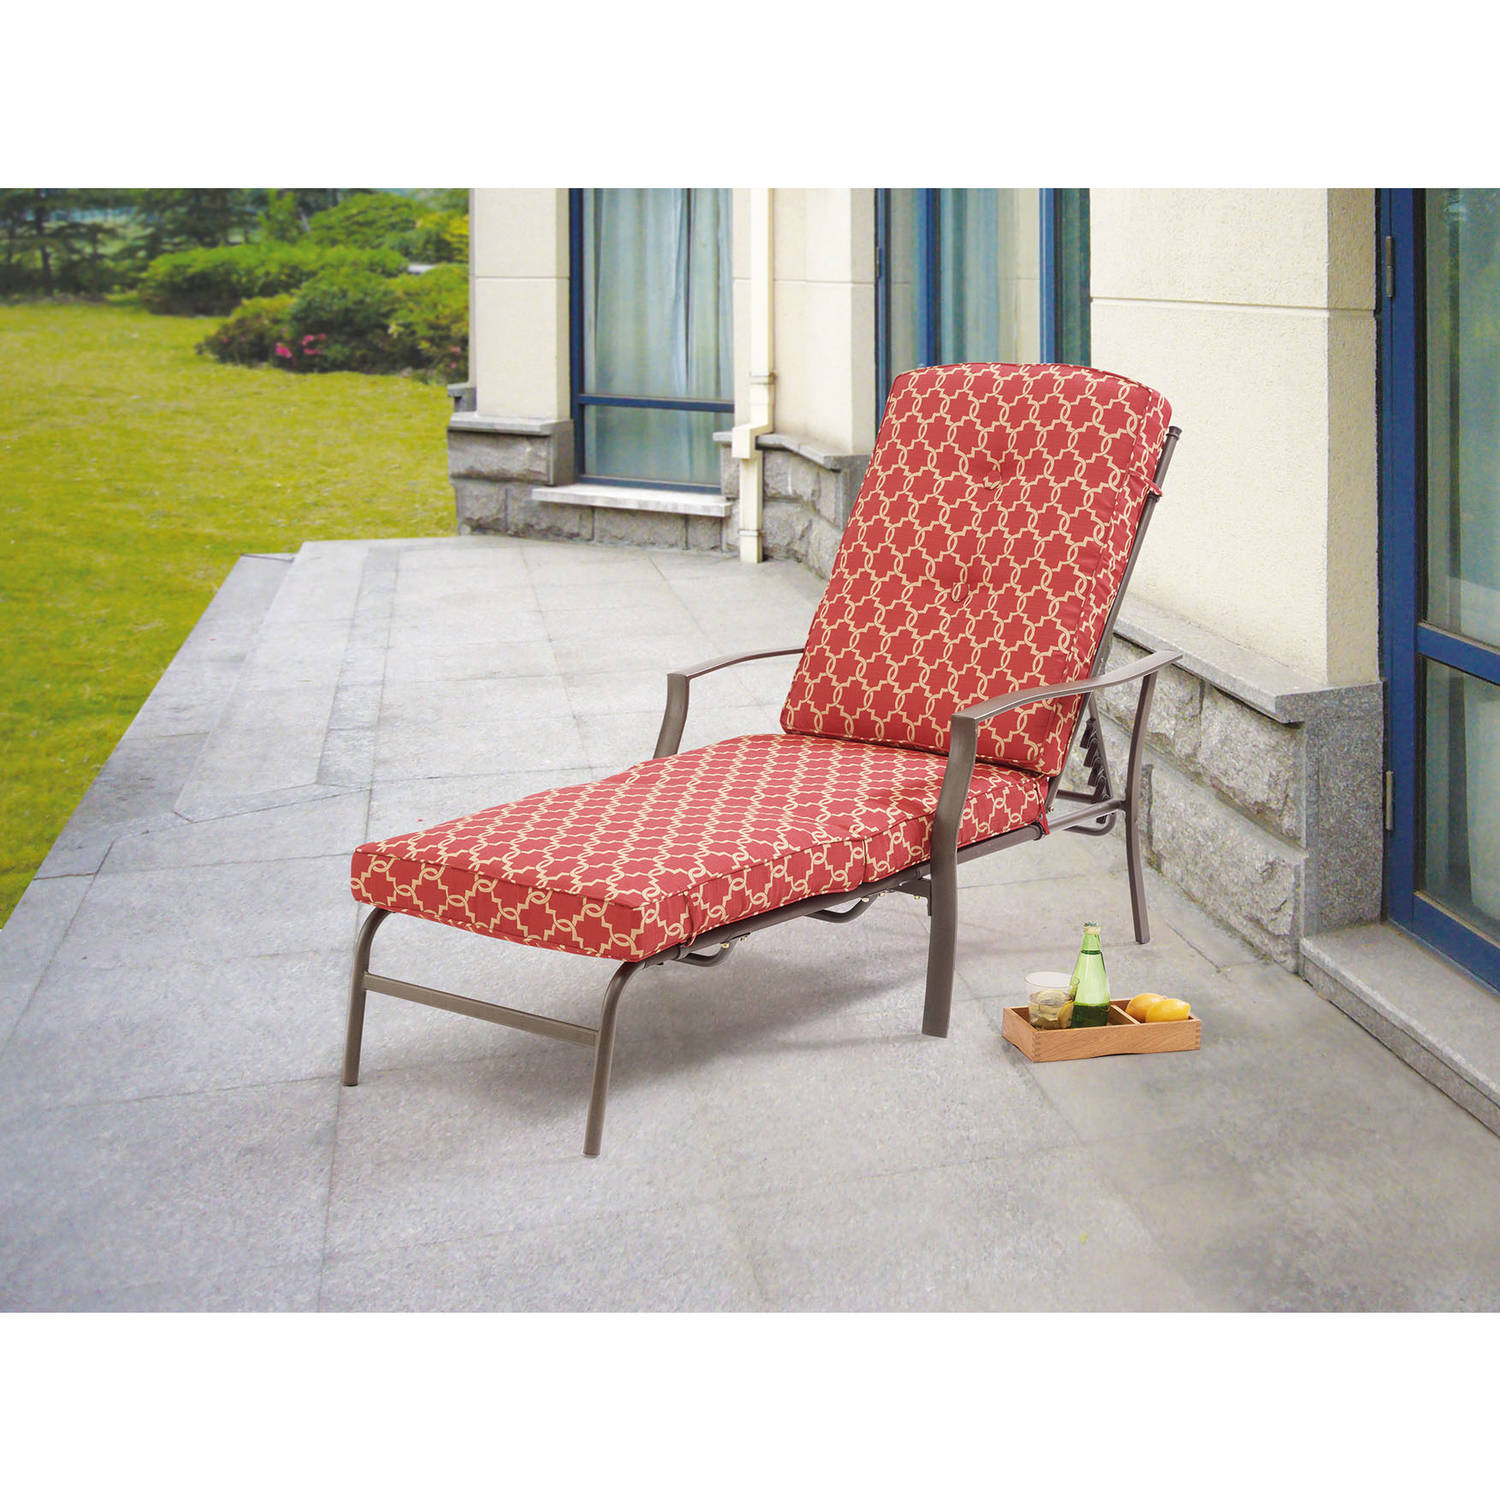 Costway Patio Foldable Chaise Lounge Chair Bed Outdoor Beach Camping Porch Chairs Yard